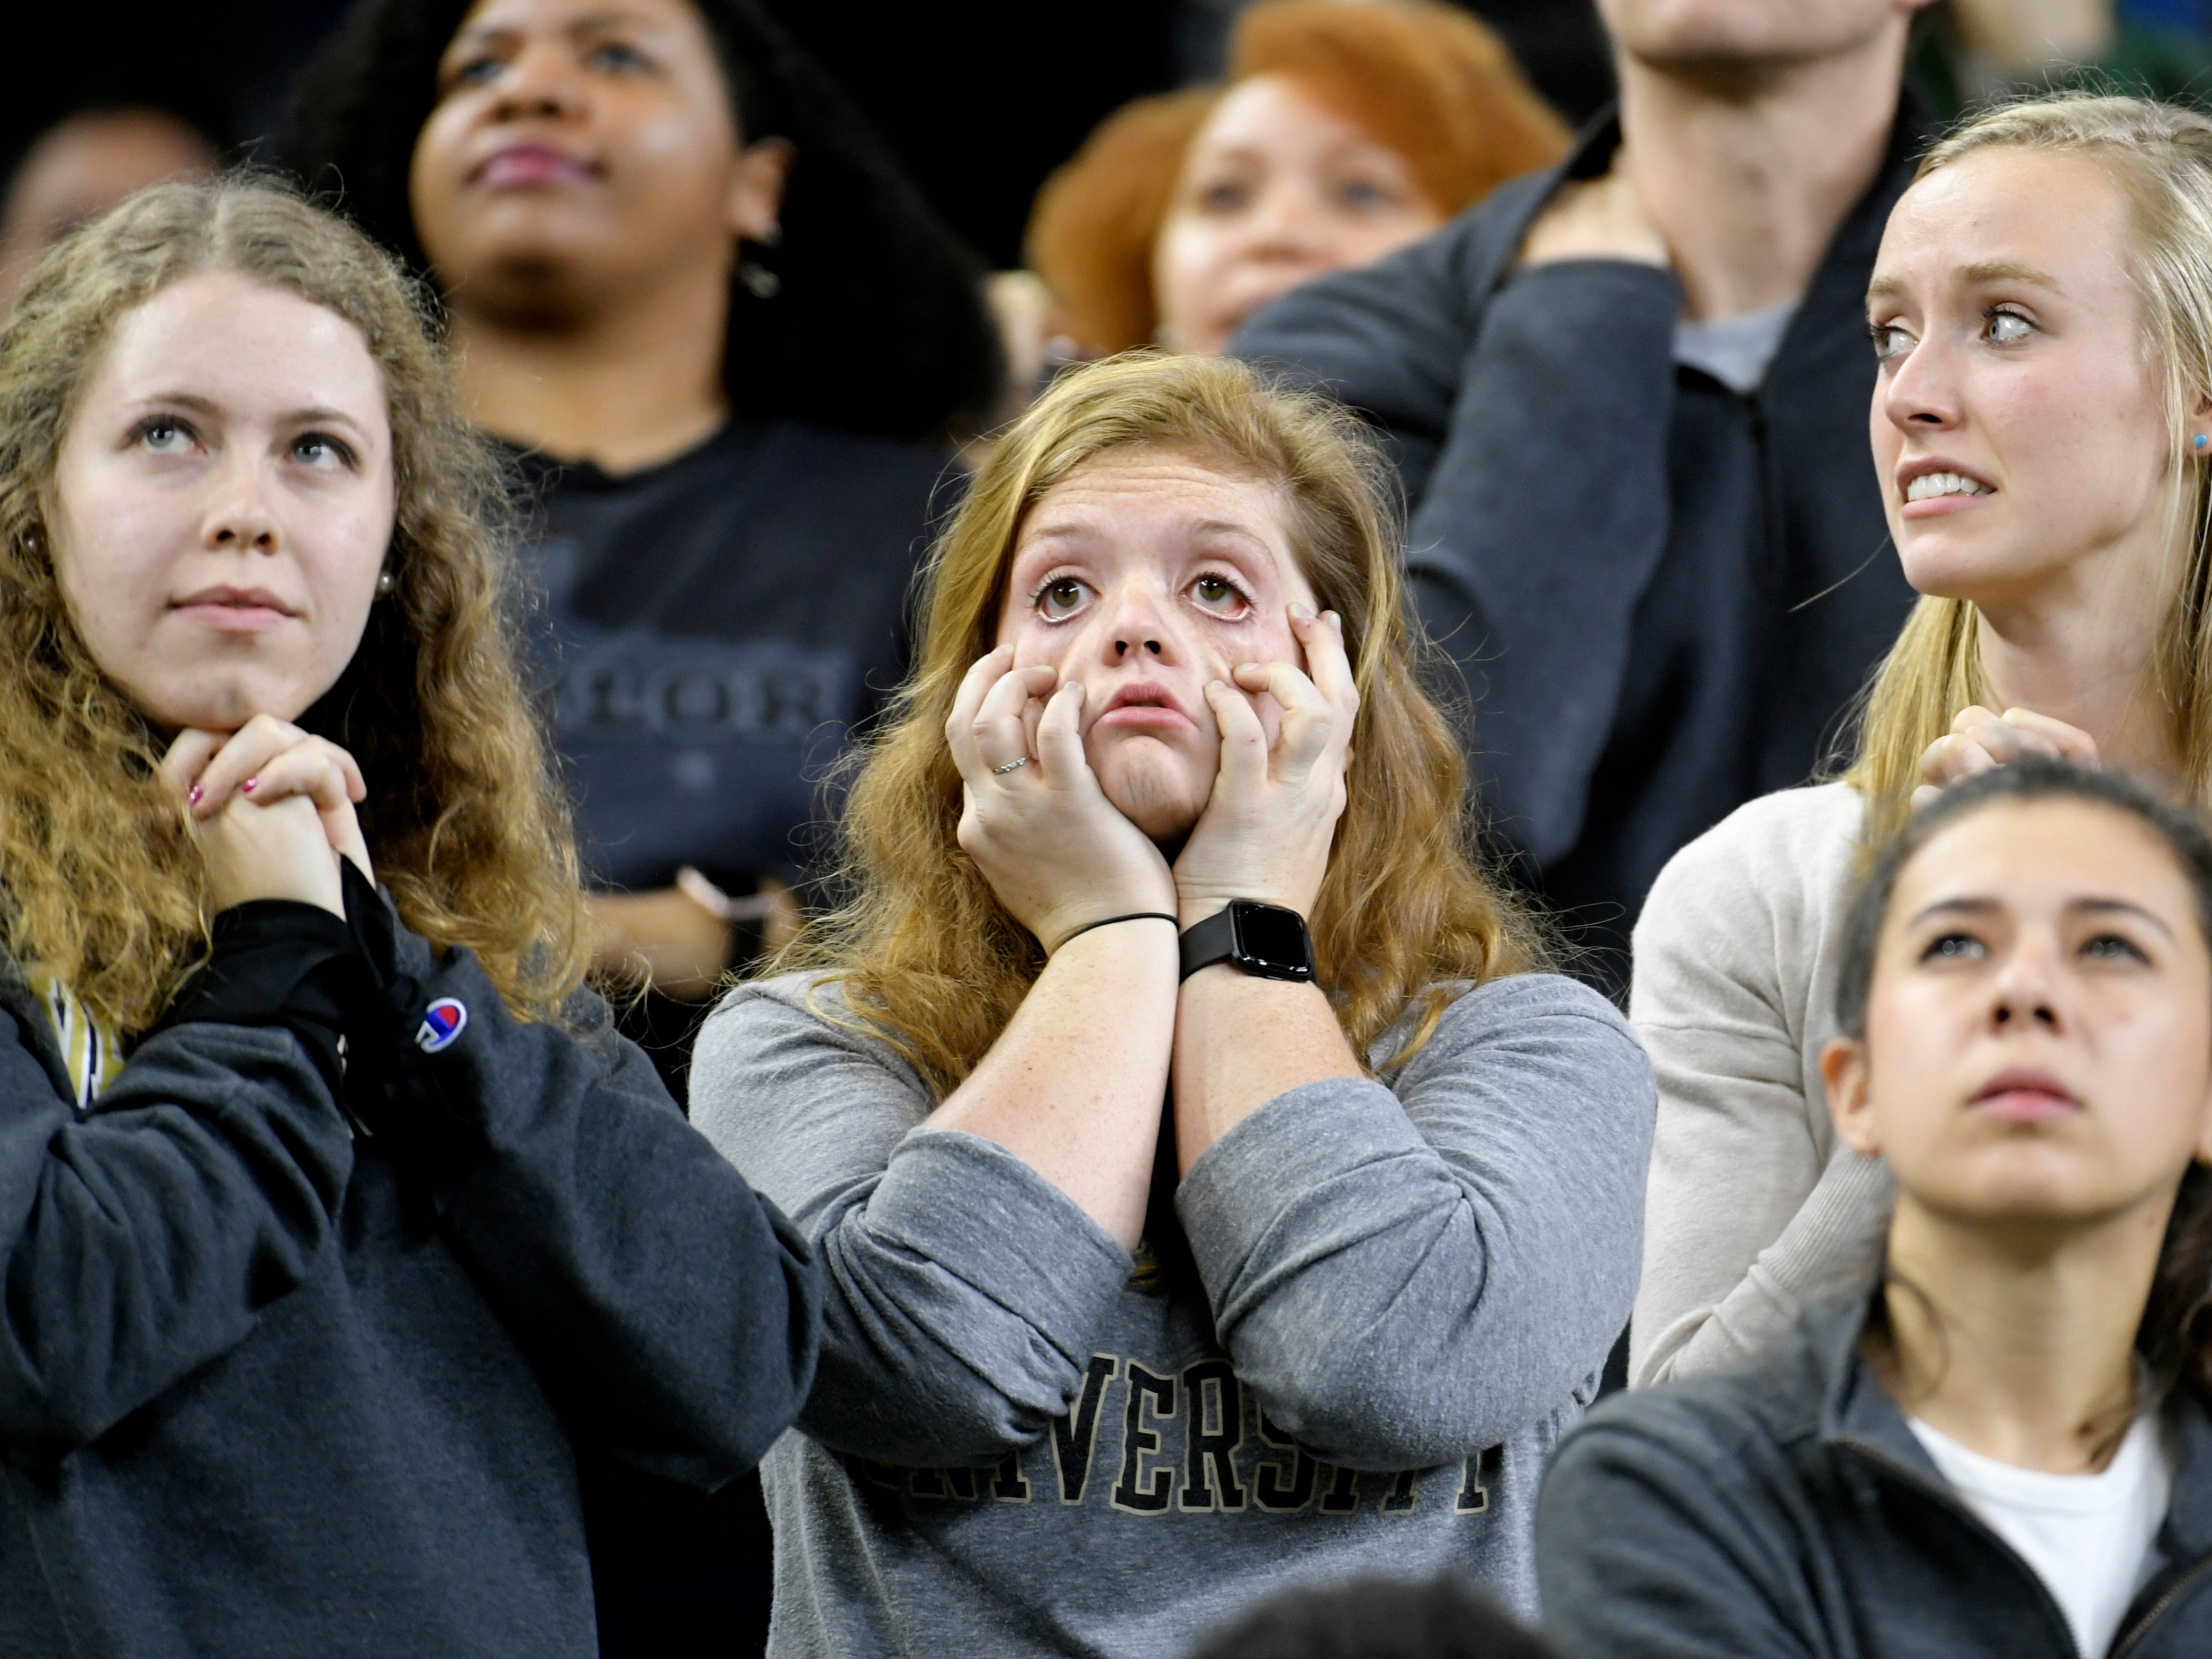 Vanderbilt fans react to the game late in the fourth quarter of the Academy Sports + Outdoors Texas Bowl at NRG Stadium in Houston on Thursday, Dec. 27, 2018.